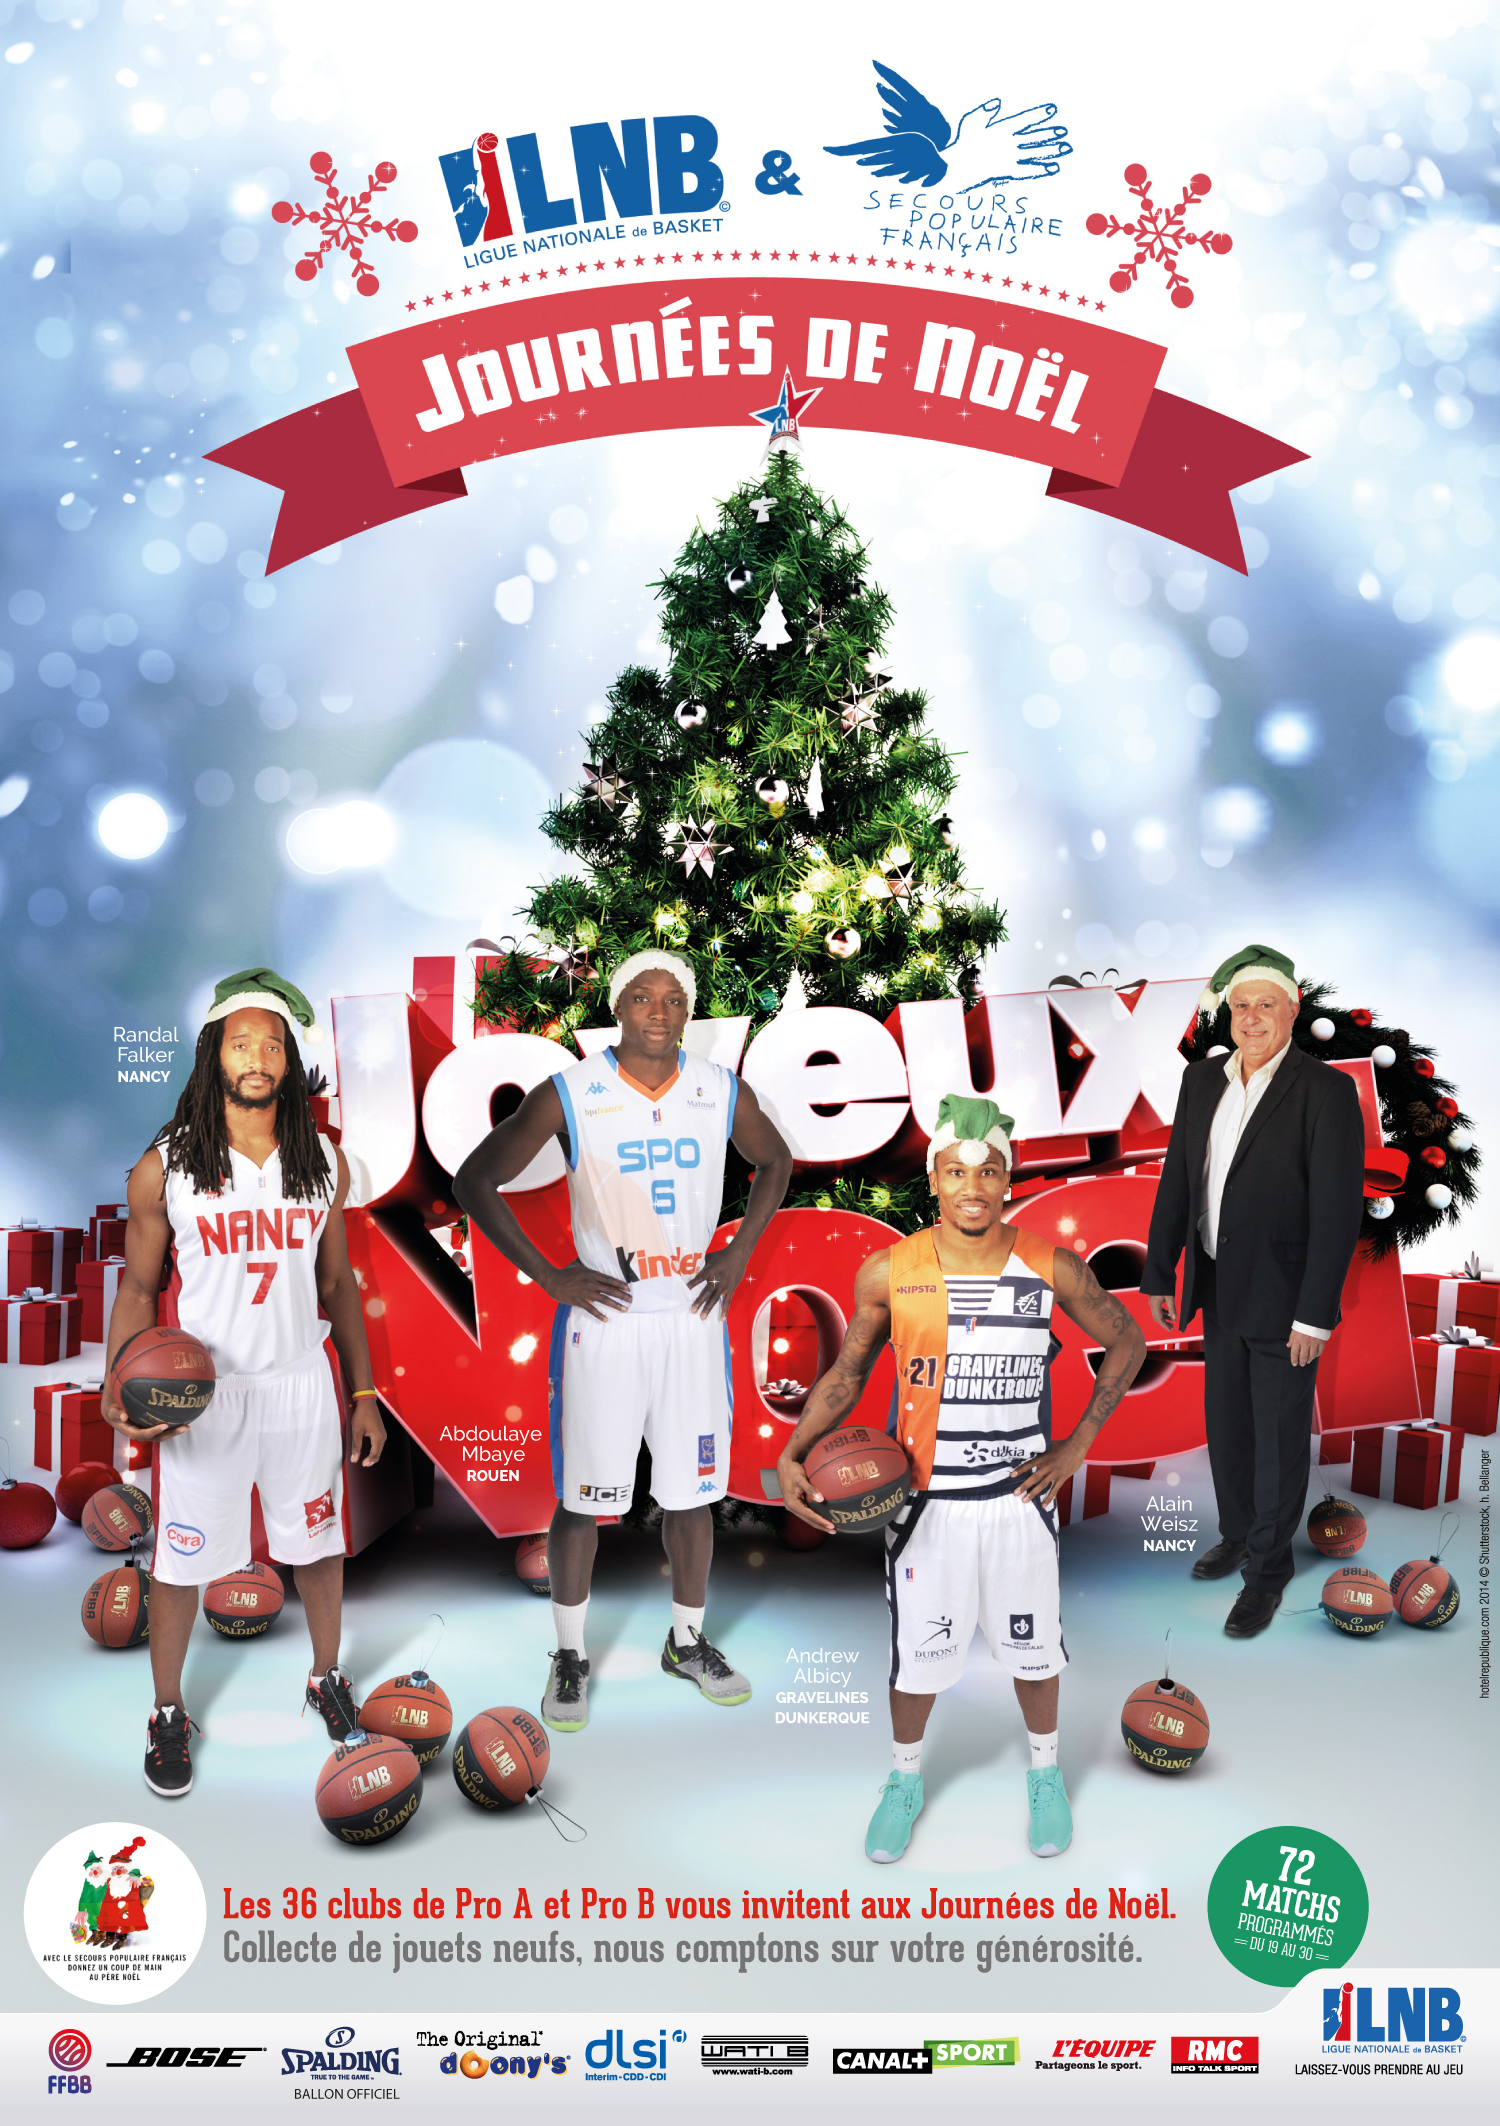 Journee-Noel-LNB-A4-HD